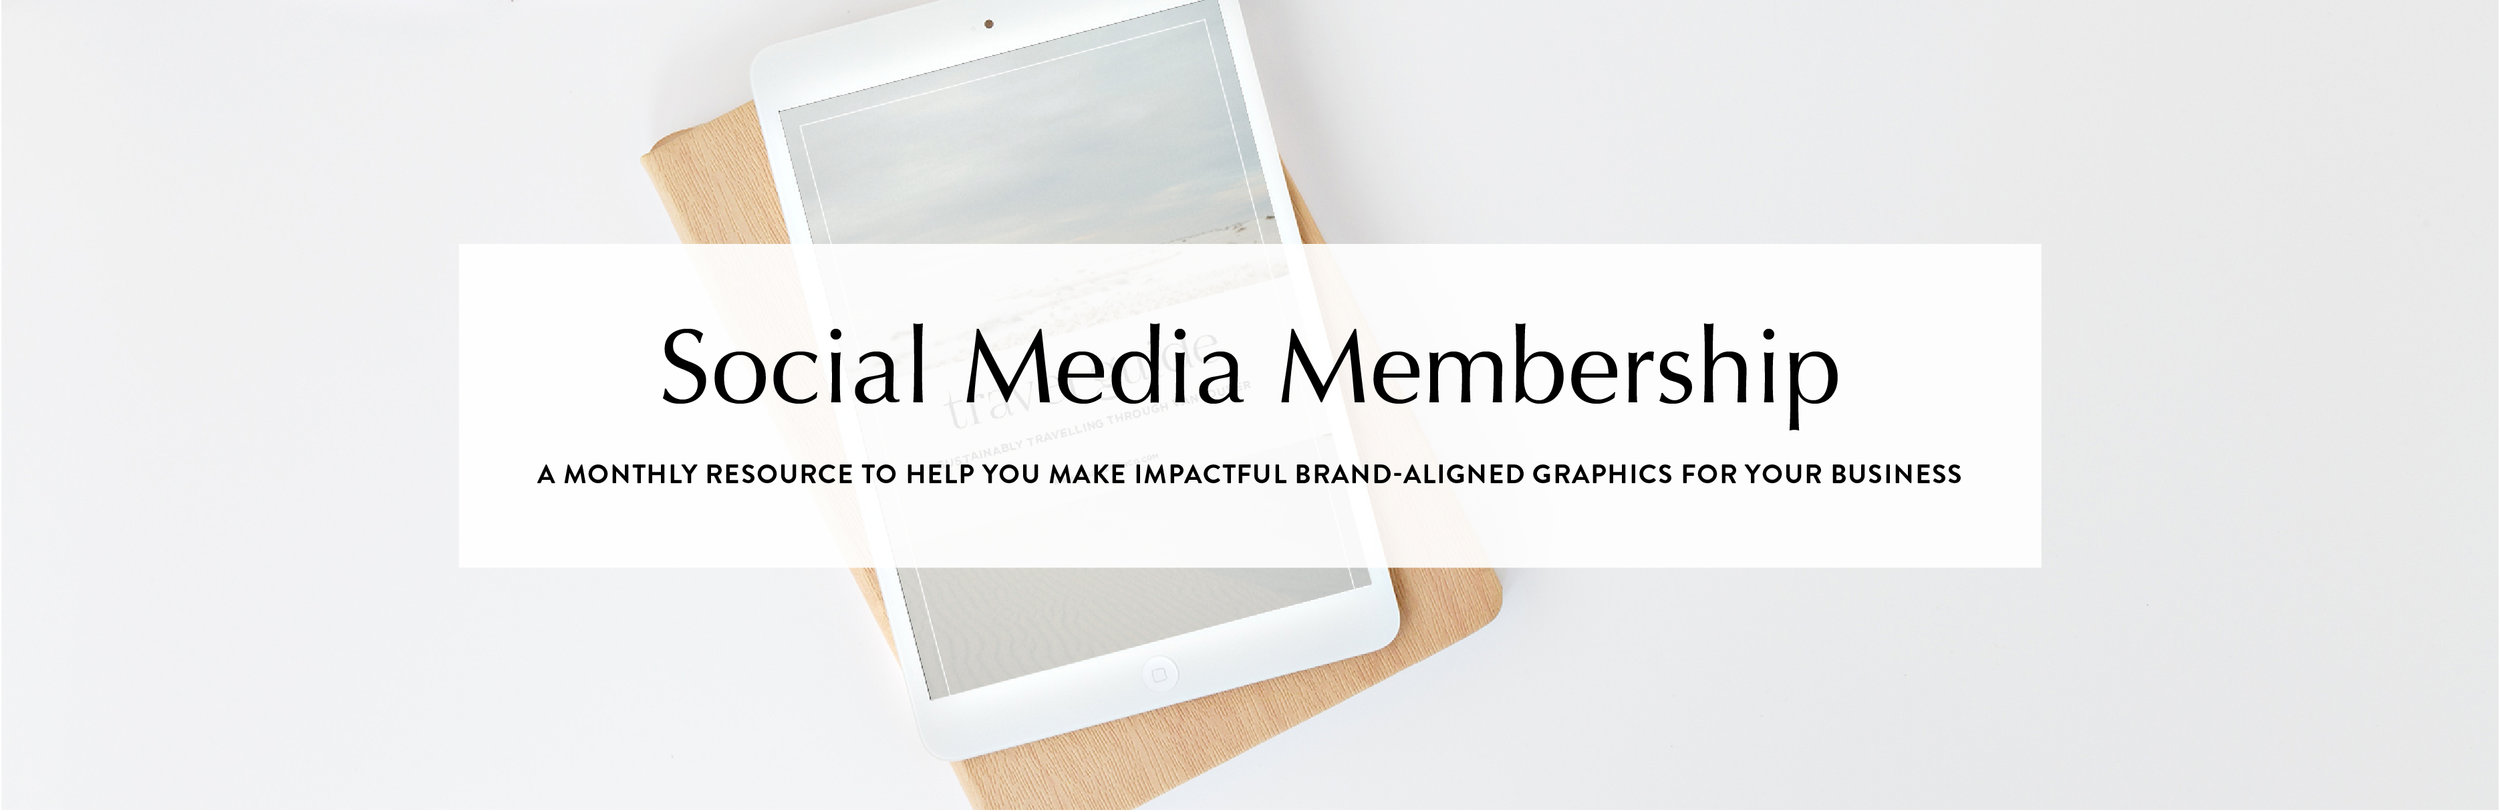 Social Media Membership | a monthly collection of customizable templates for your creative business | Reux Design Co.